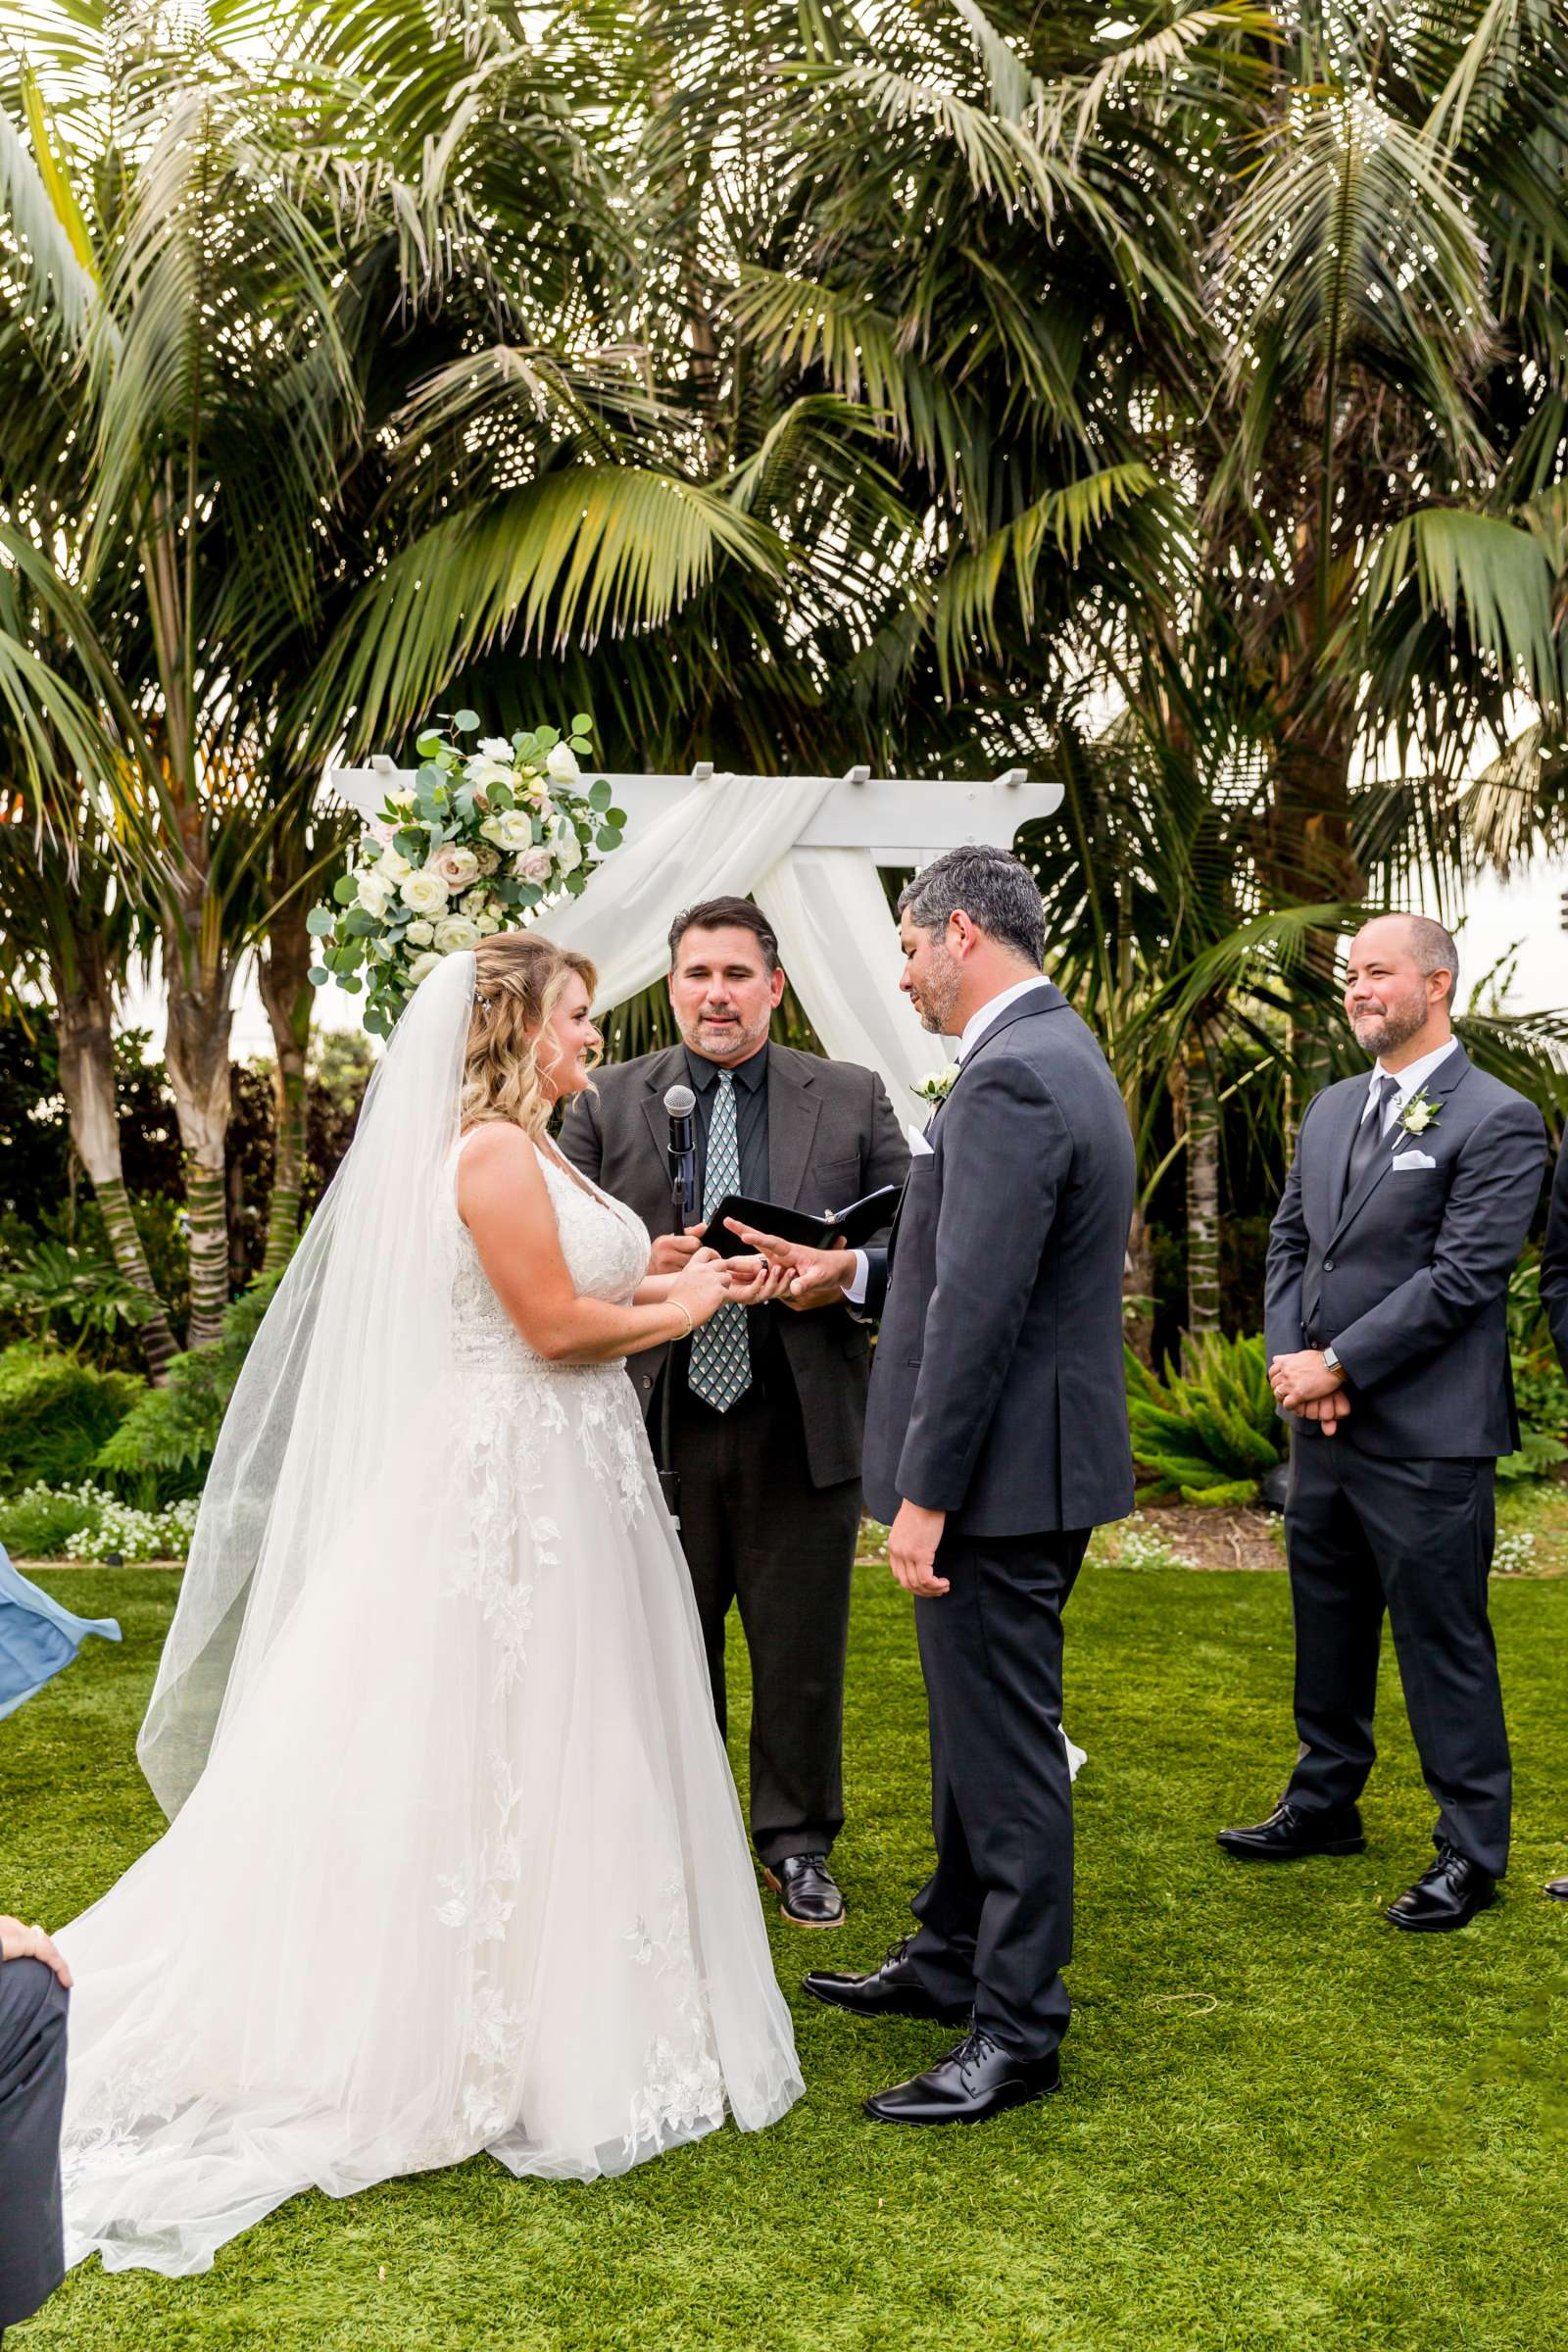 Cape Rey Carlsbad, A Hilton Resort Wedding, Michelle and Justin Wedding Photo #65 by True Photography